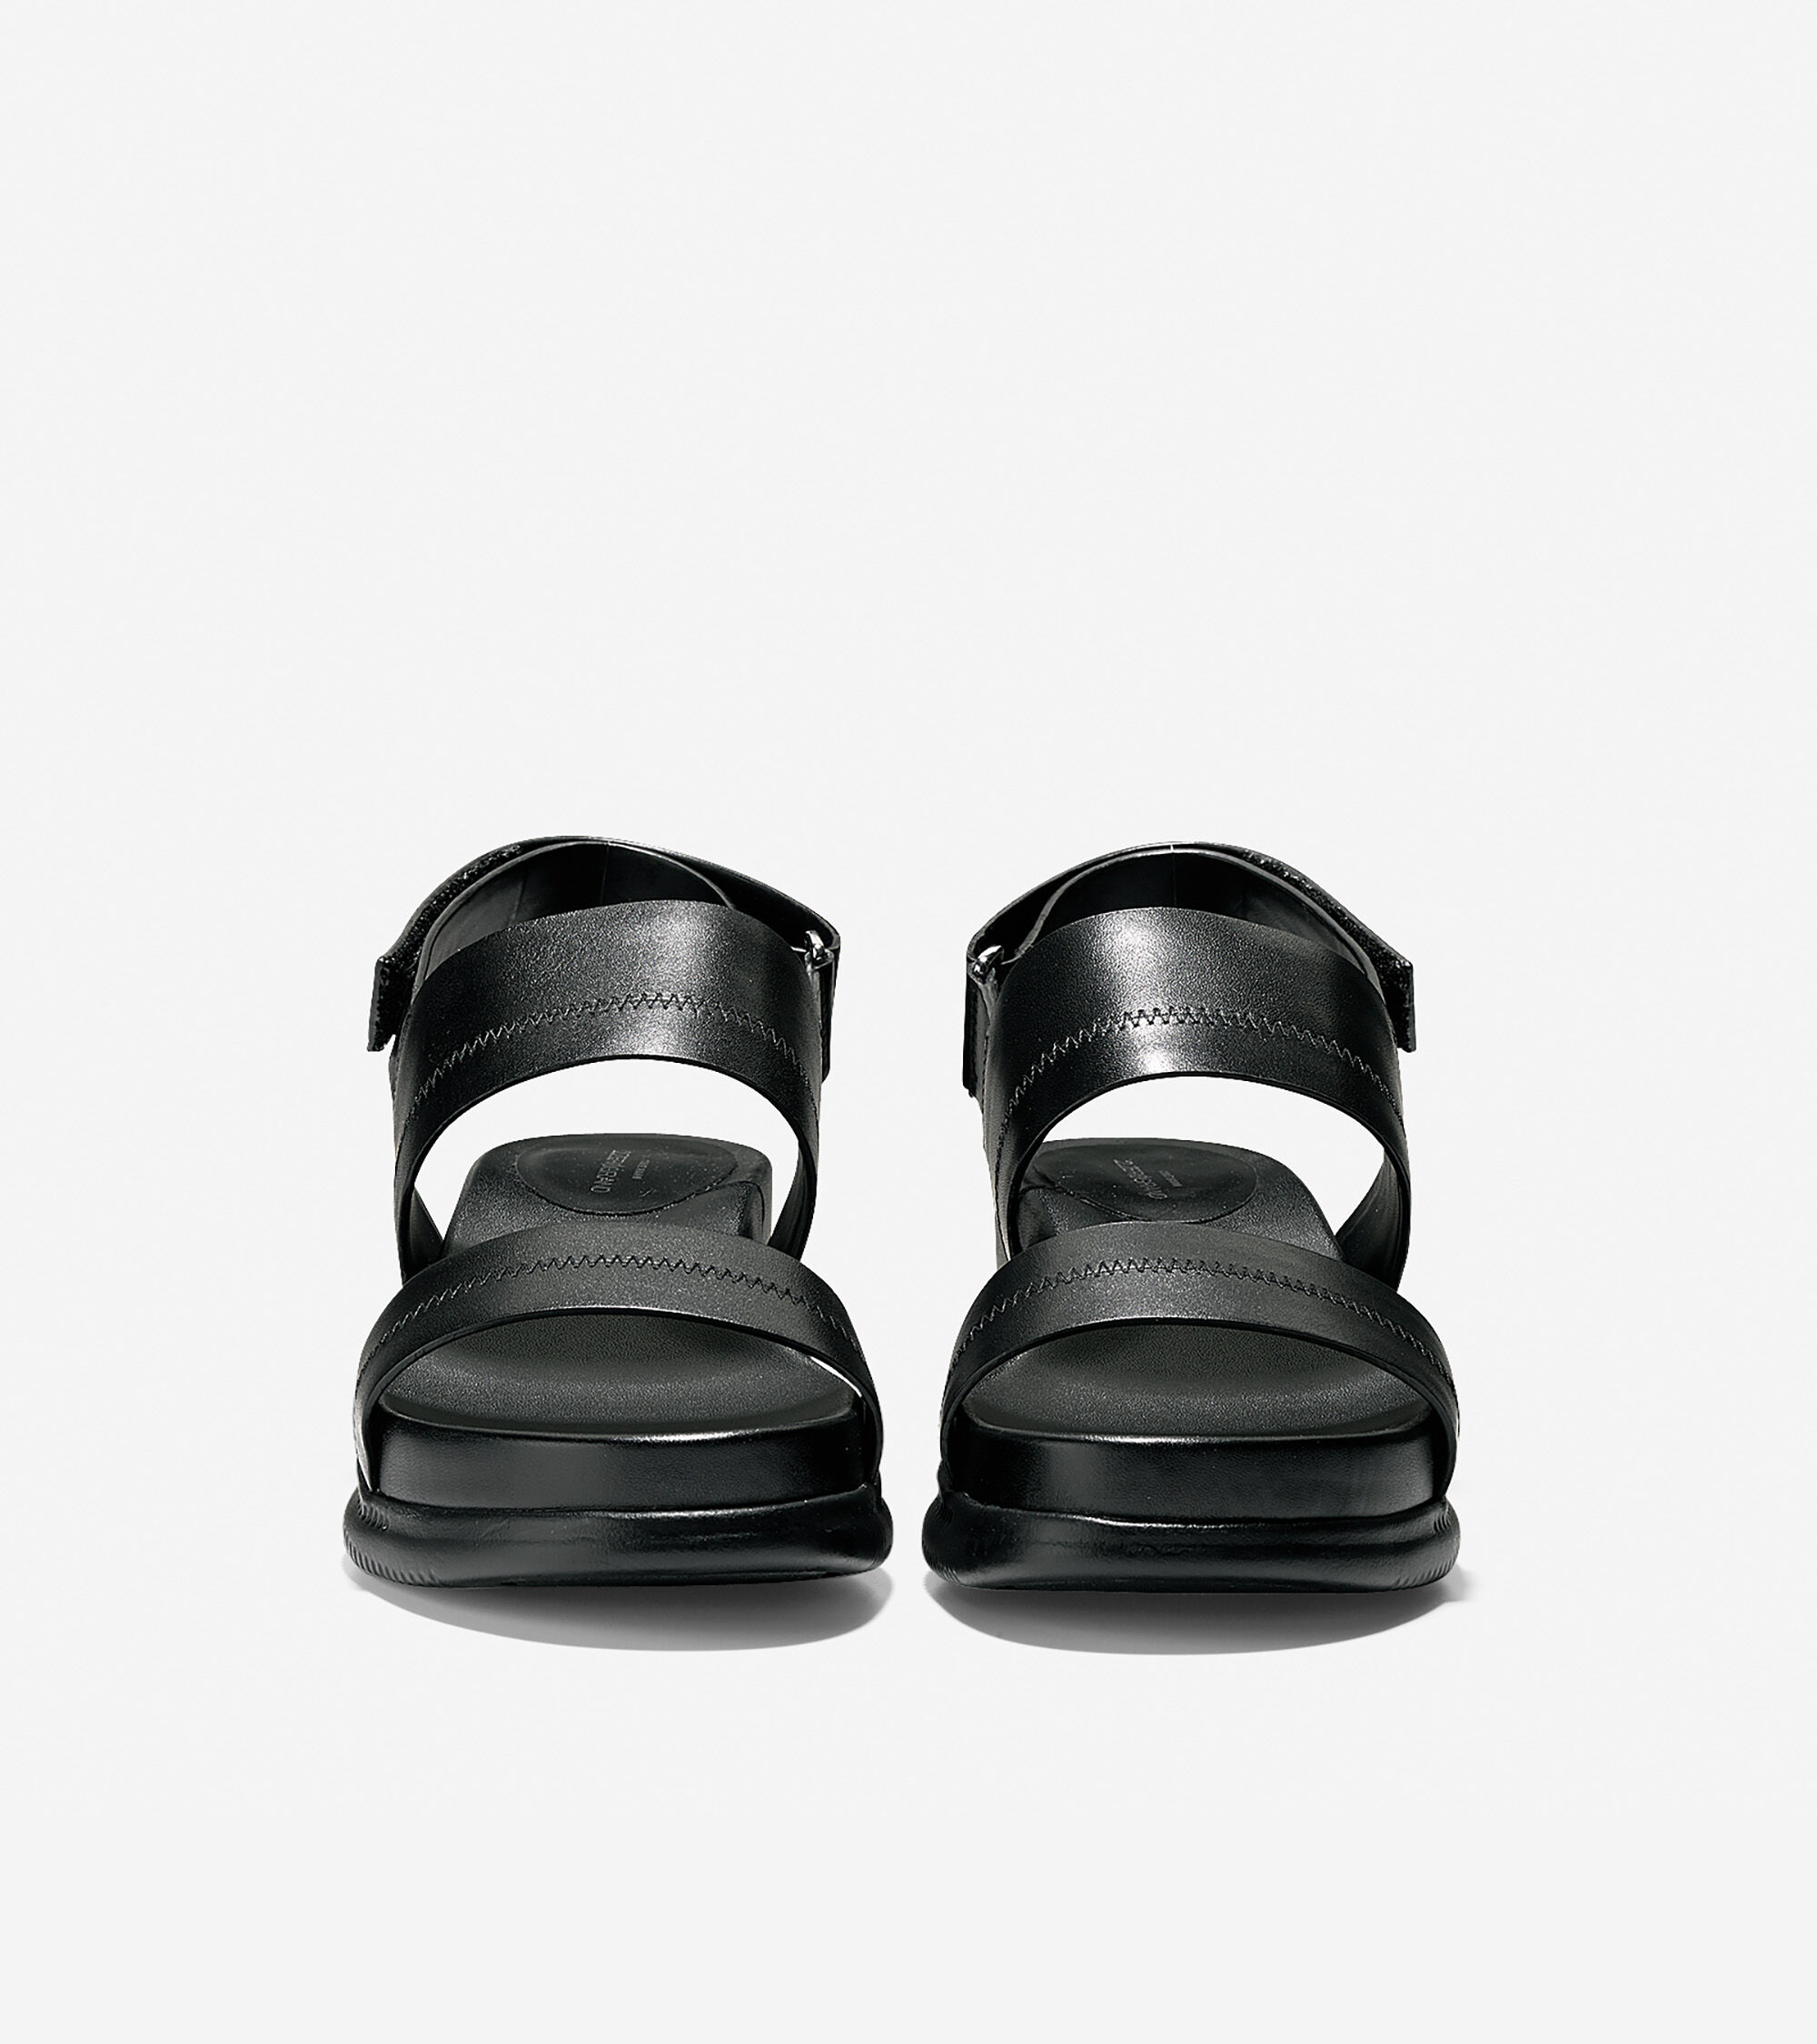 425c0f7e6 Cole Haan Women s 2.ZERØGRAND Slide Sandal (30mm) in Black-black ...